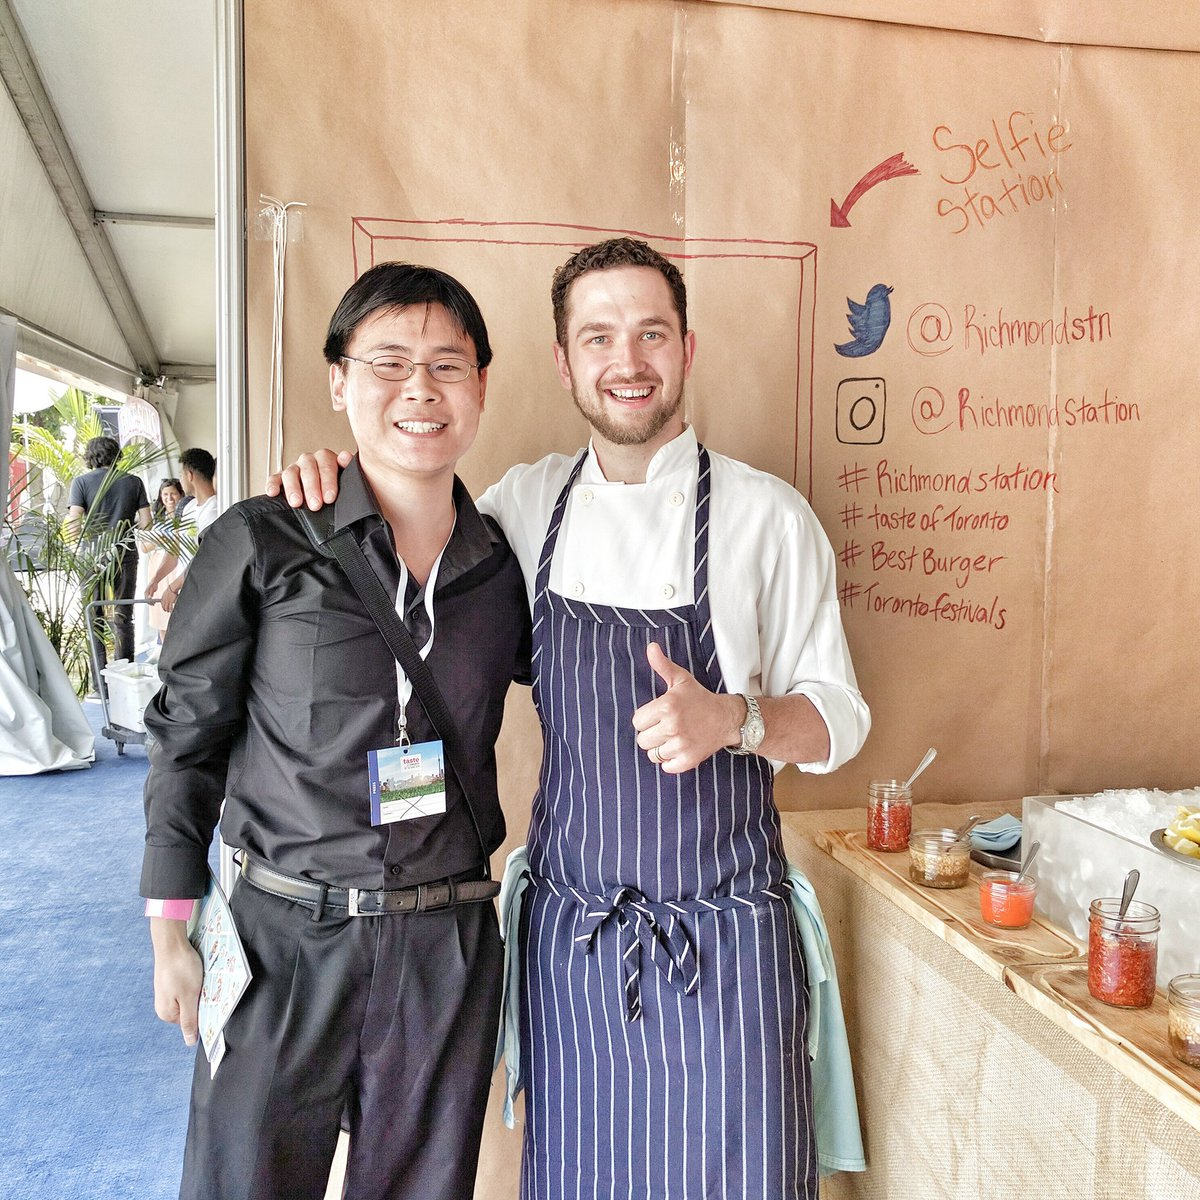 Chef Carl Heinrich with Travelling Foodie at Taste of Toronto Festival, Toronto